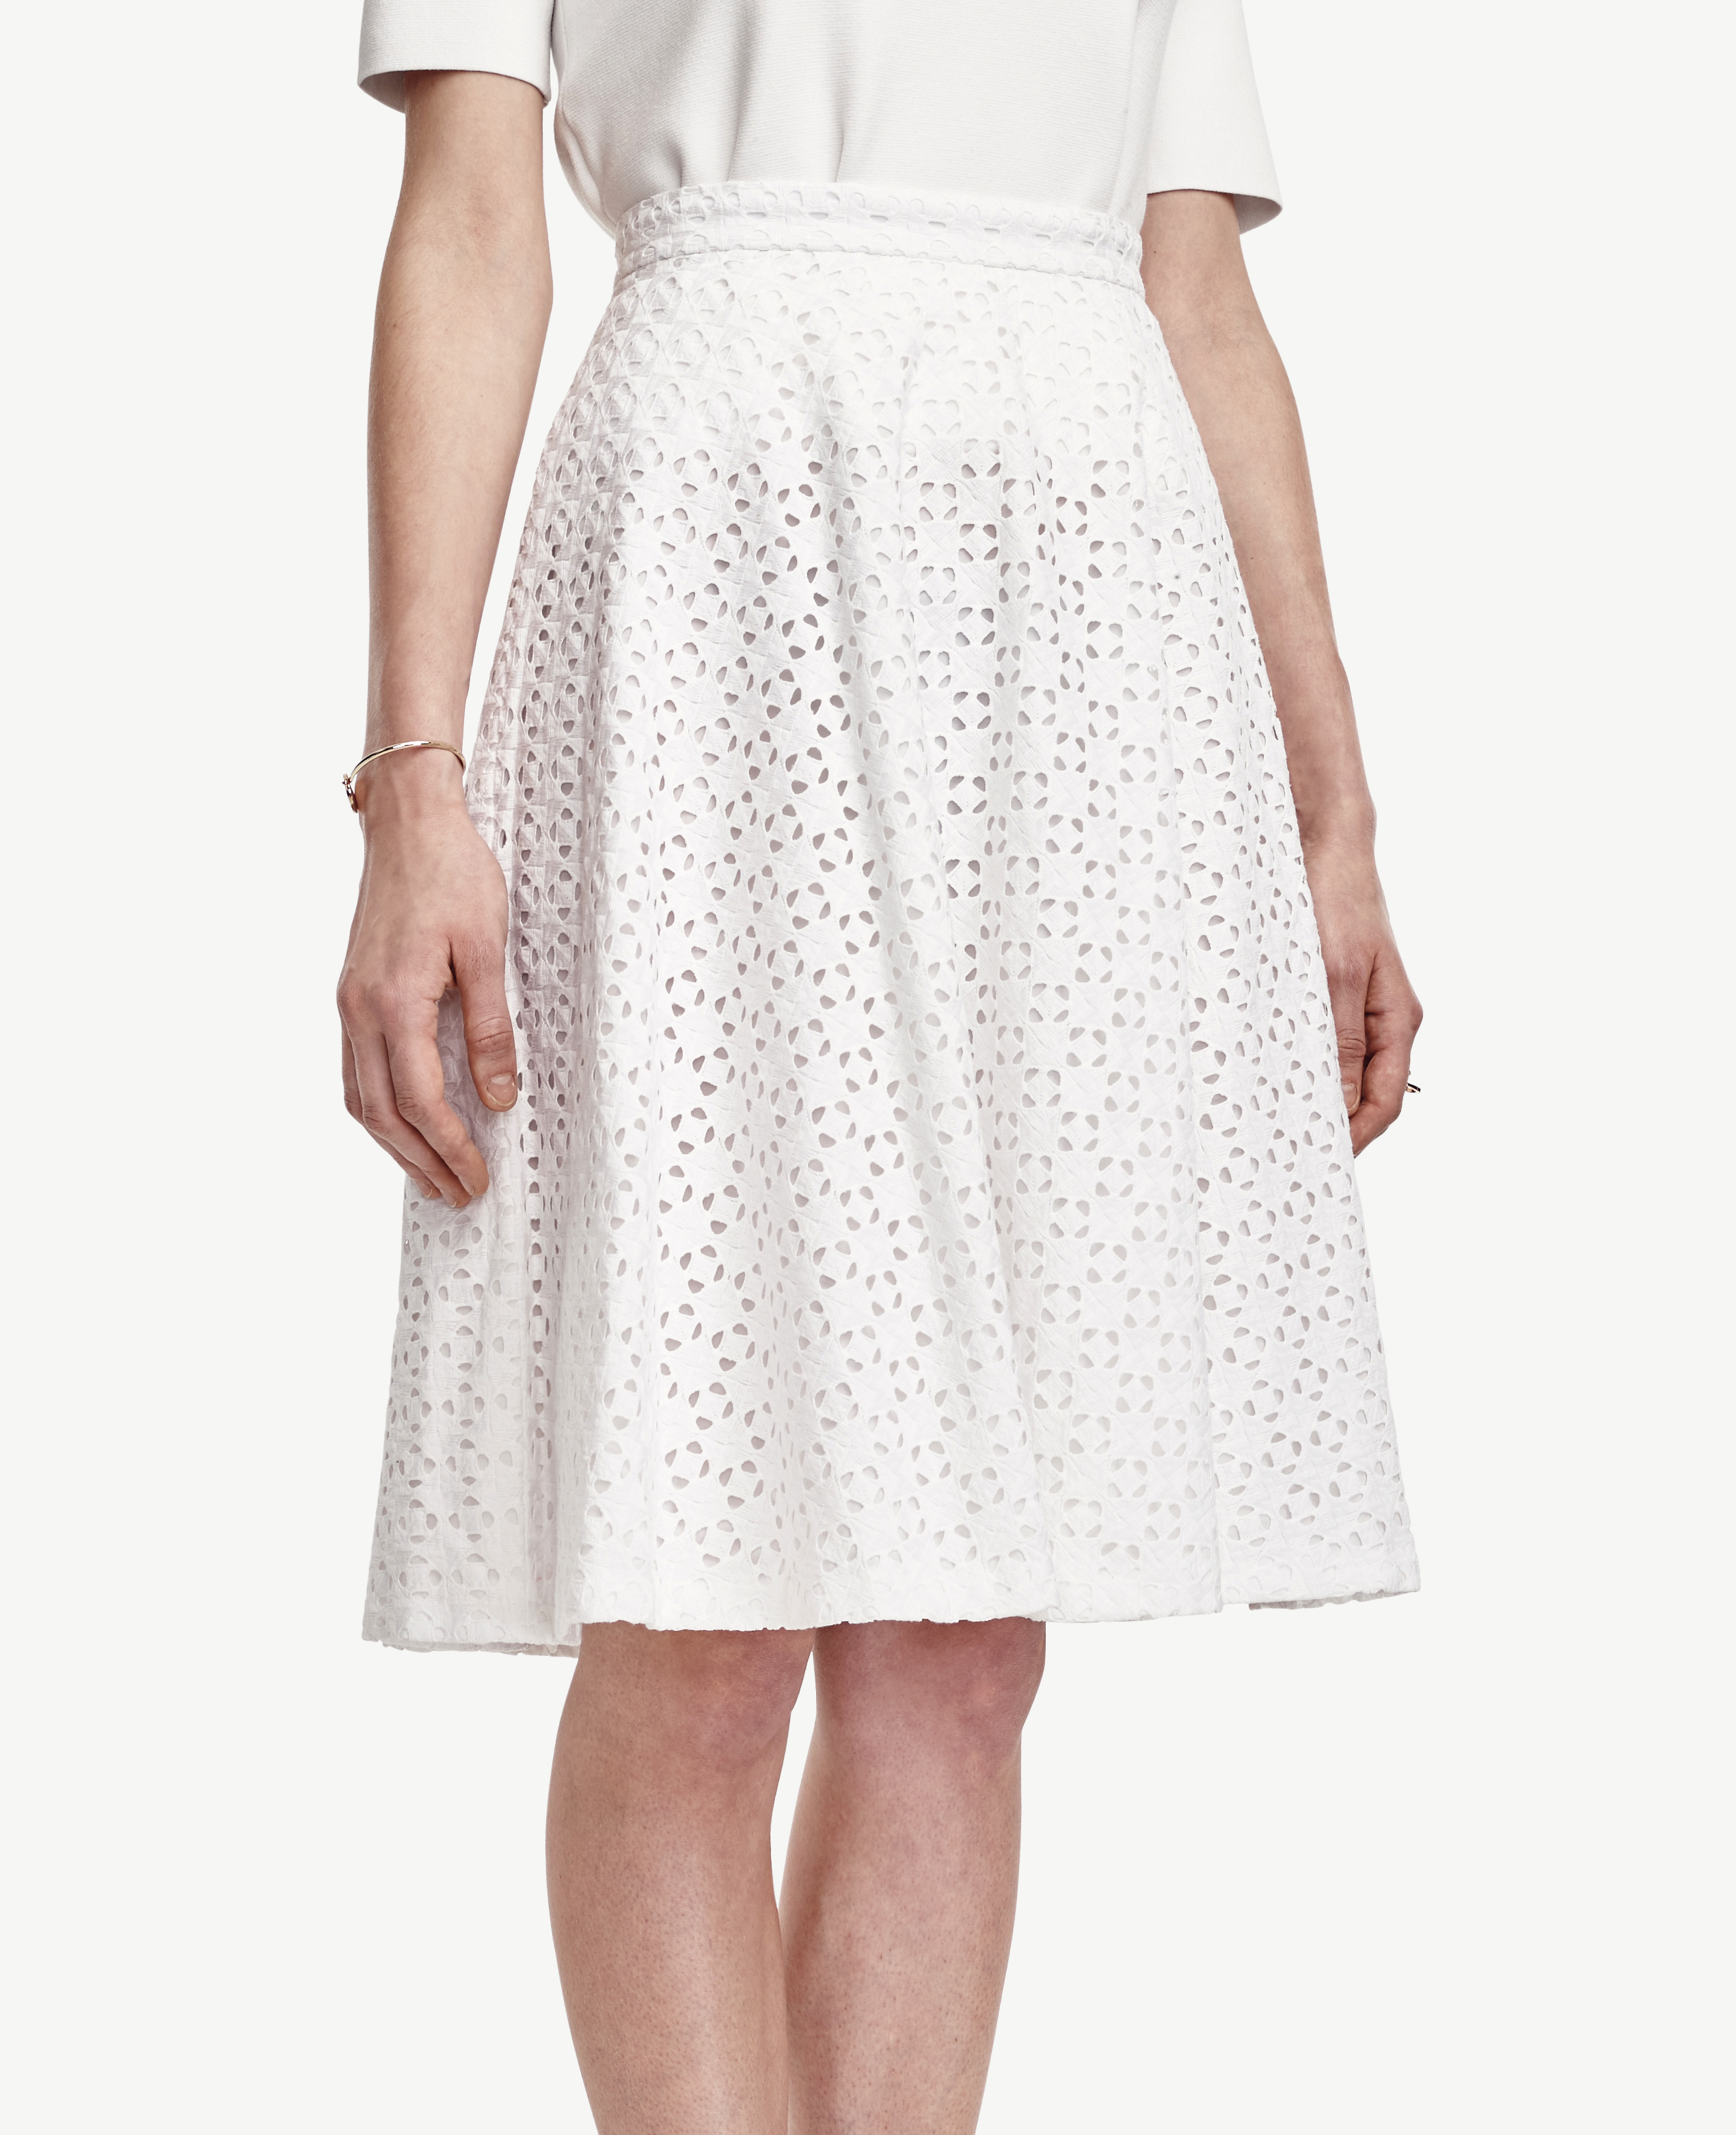 Ann taylor Tall Diamond Eyelet Skirt in White | Lyst